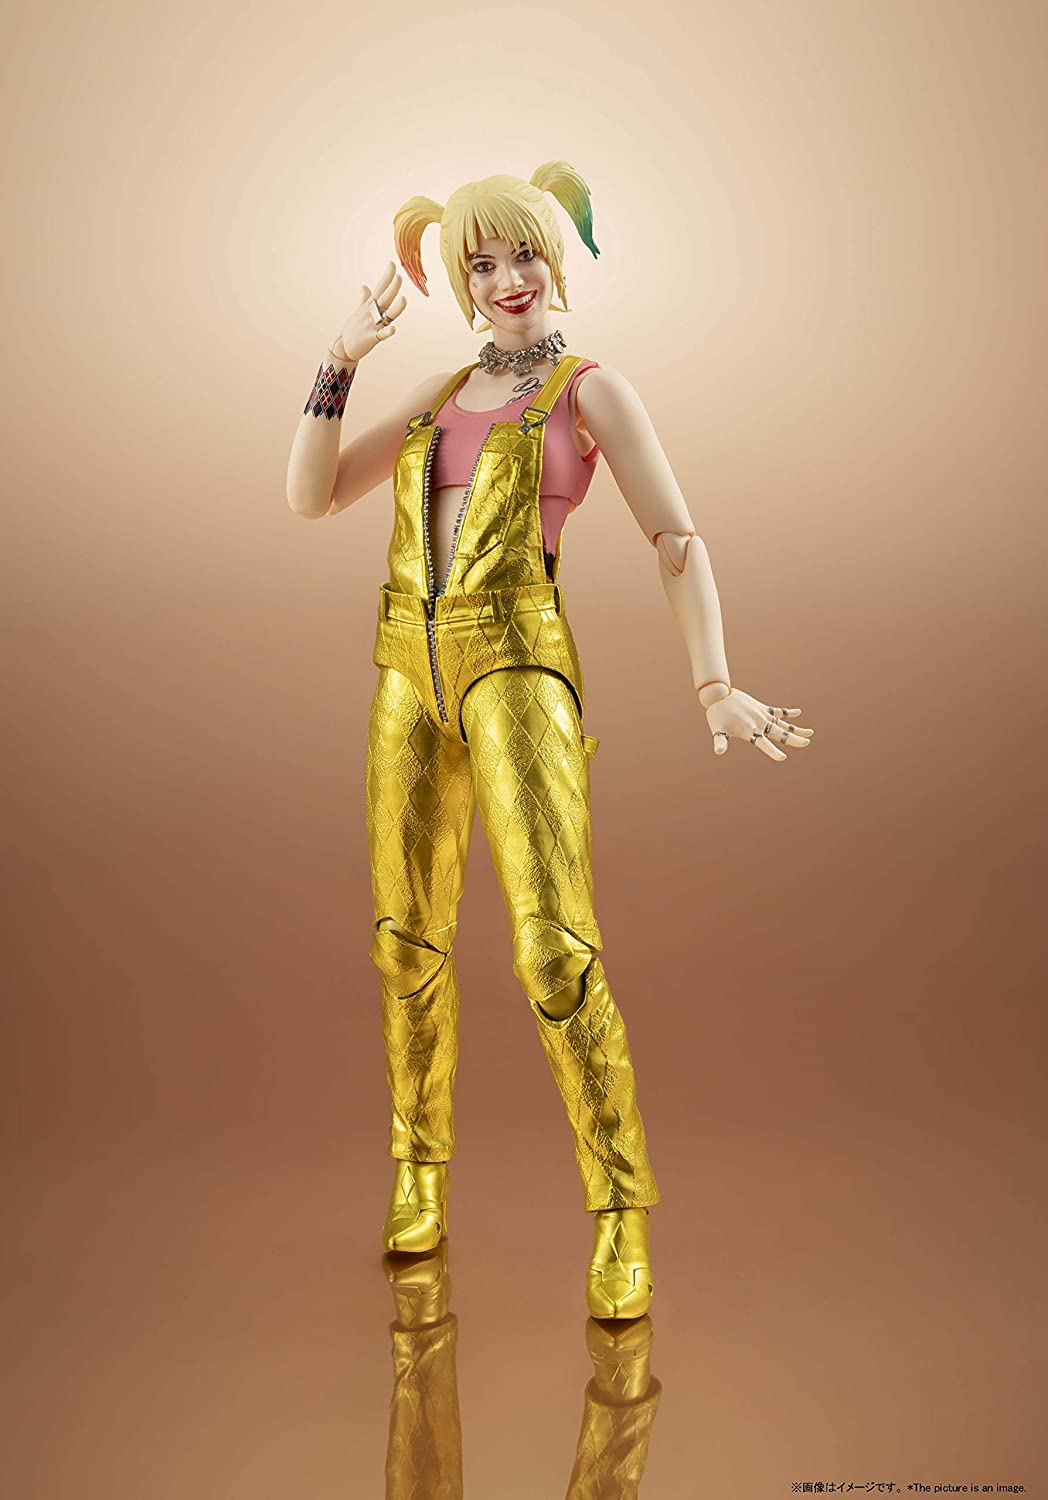 In-Stock Figuarts Harley Quinn Birds of Prey action figure Bandai S.H